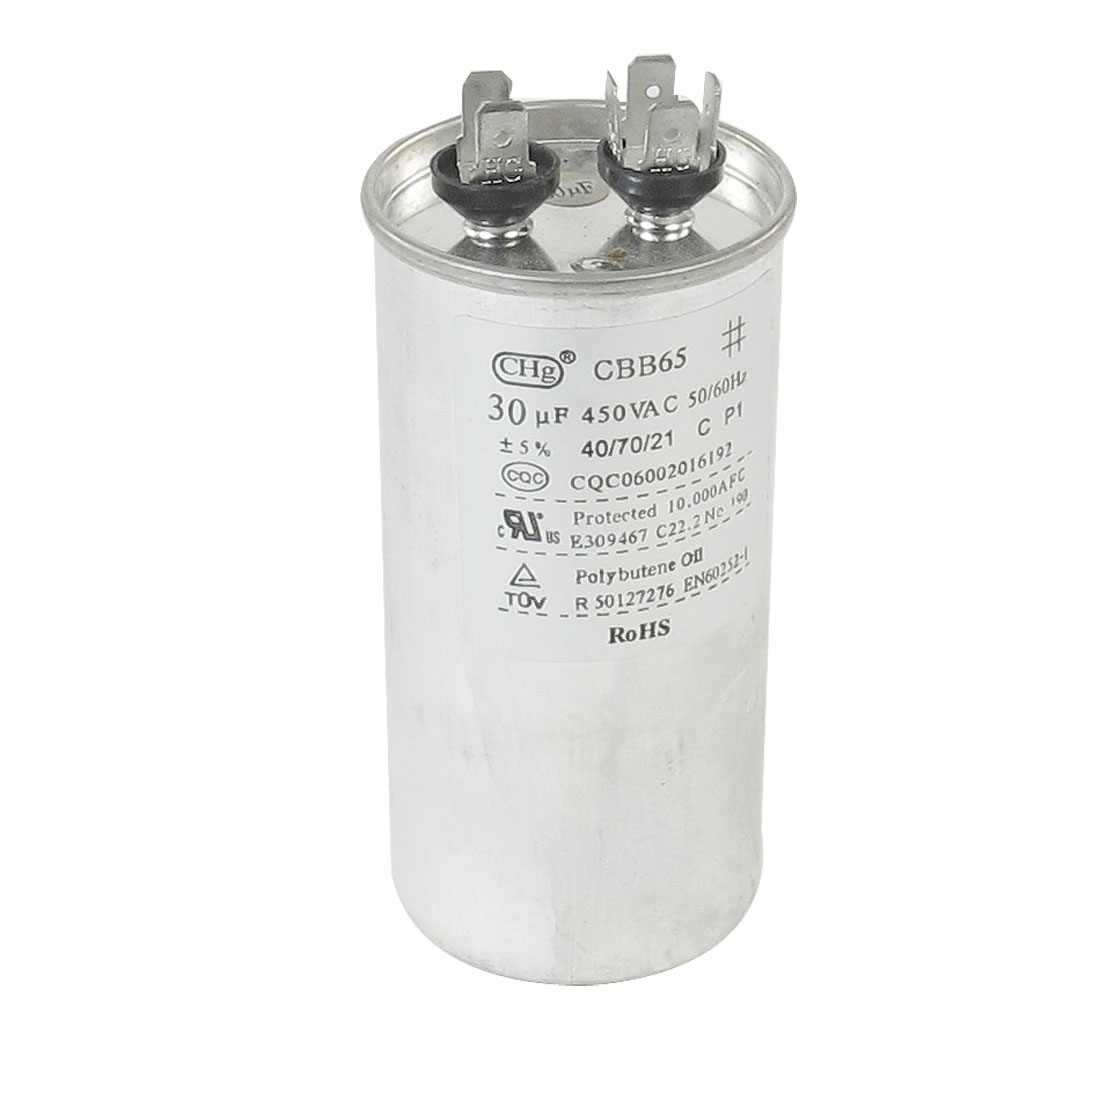 CBB65 AC 450V 30uF Polypropylene Film Motor Run Capacitor for Air Conditioner